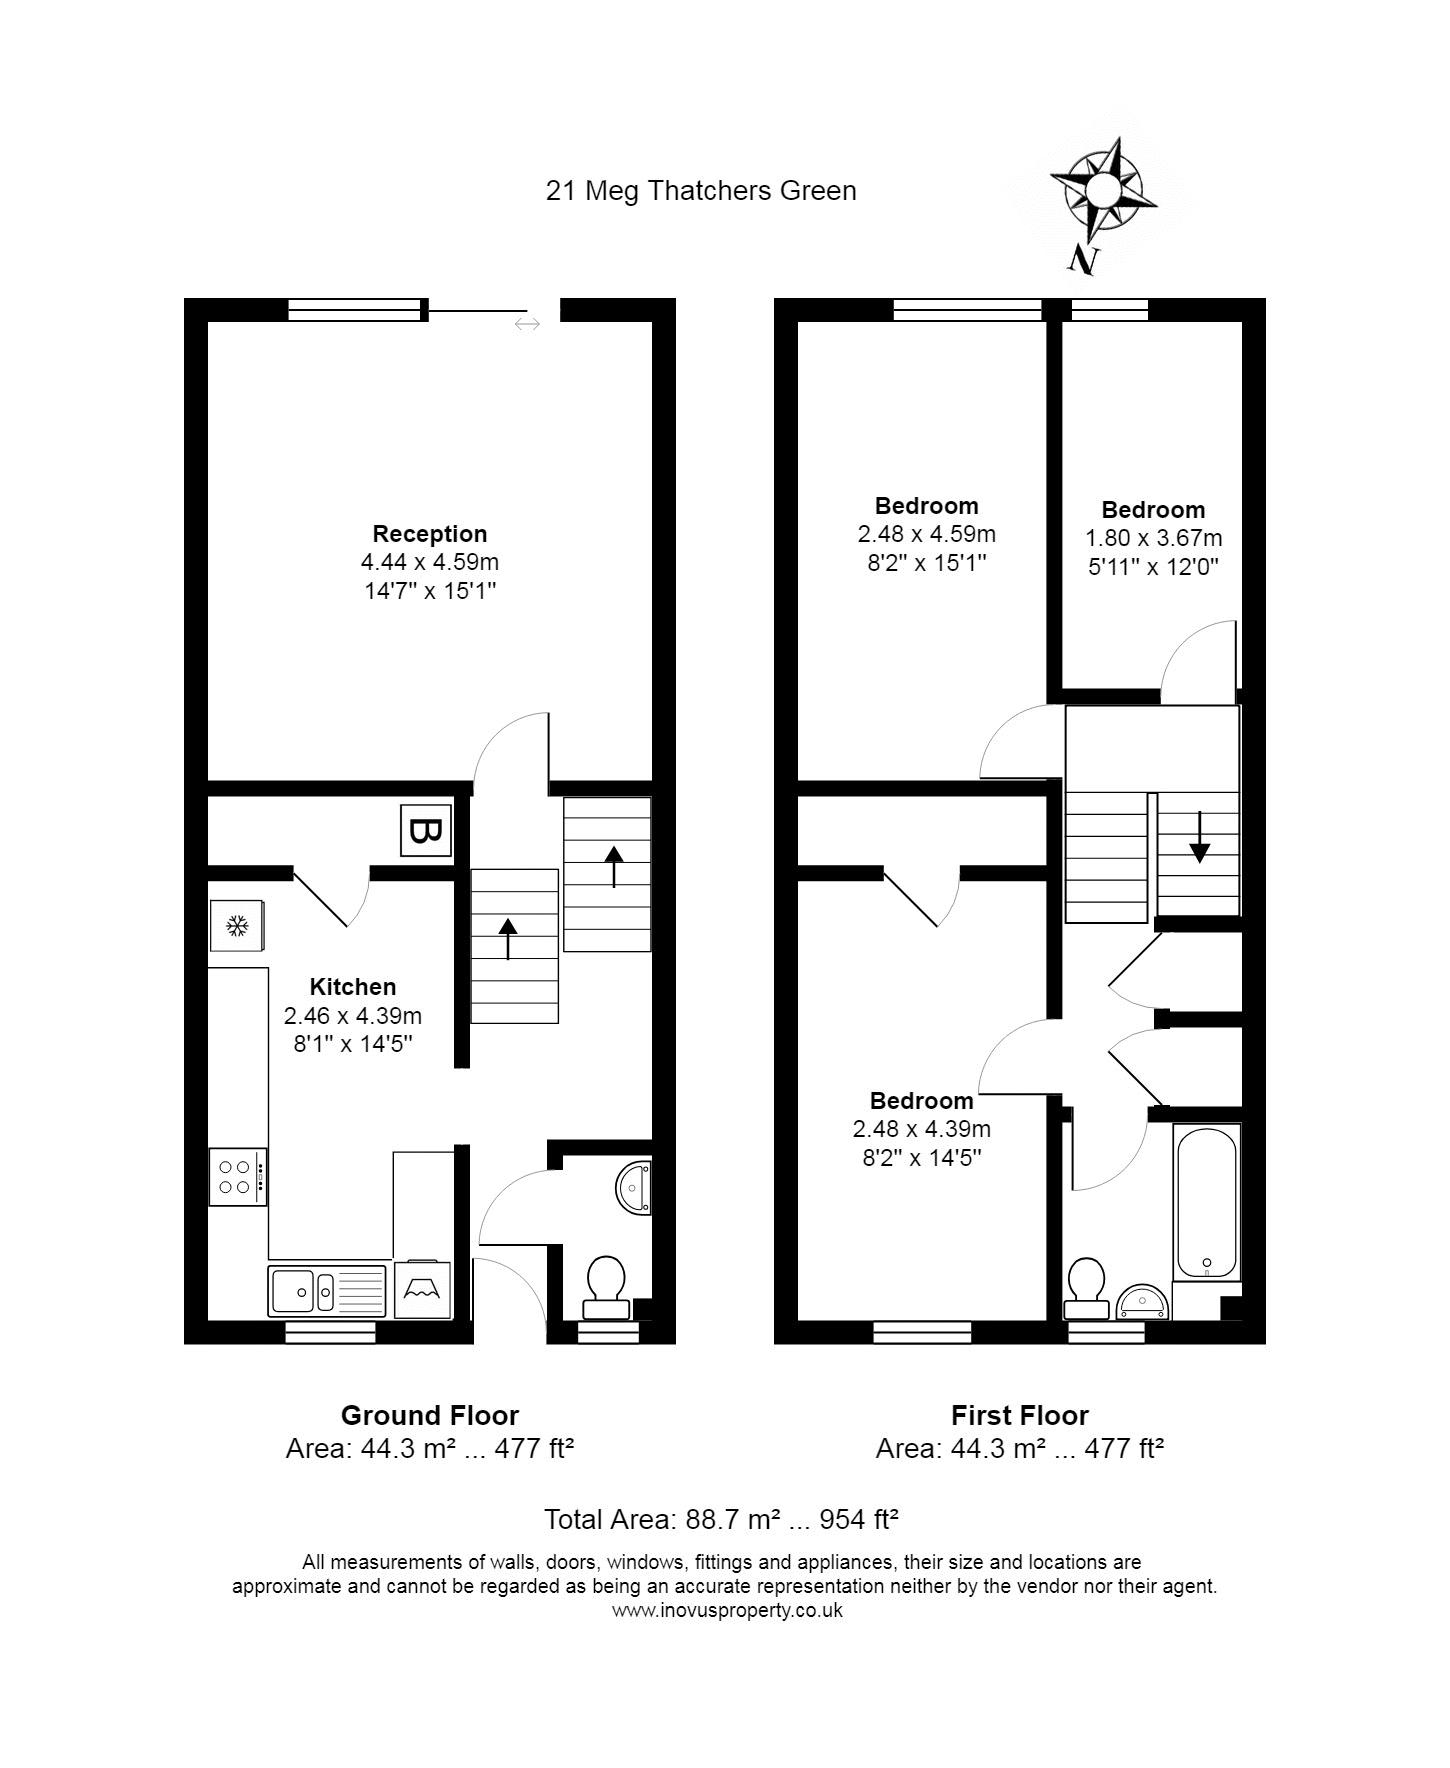 Floorplan for the property 3 bed House for sale on Meg Thatchers Green - 1